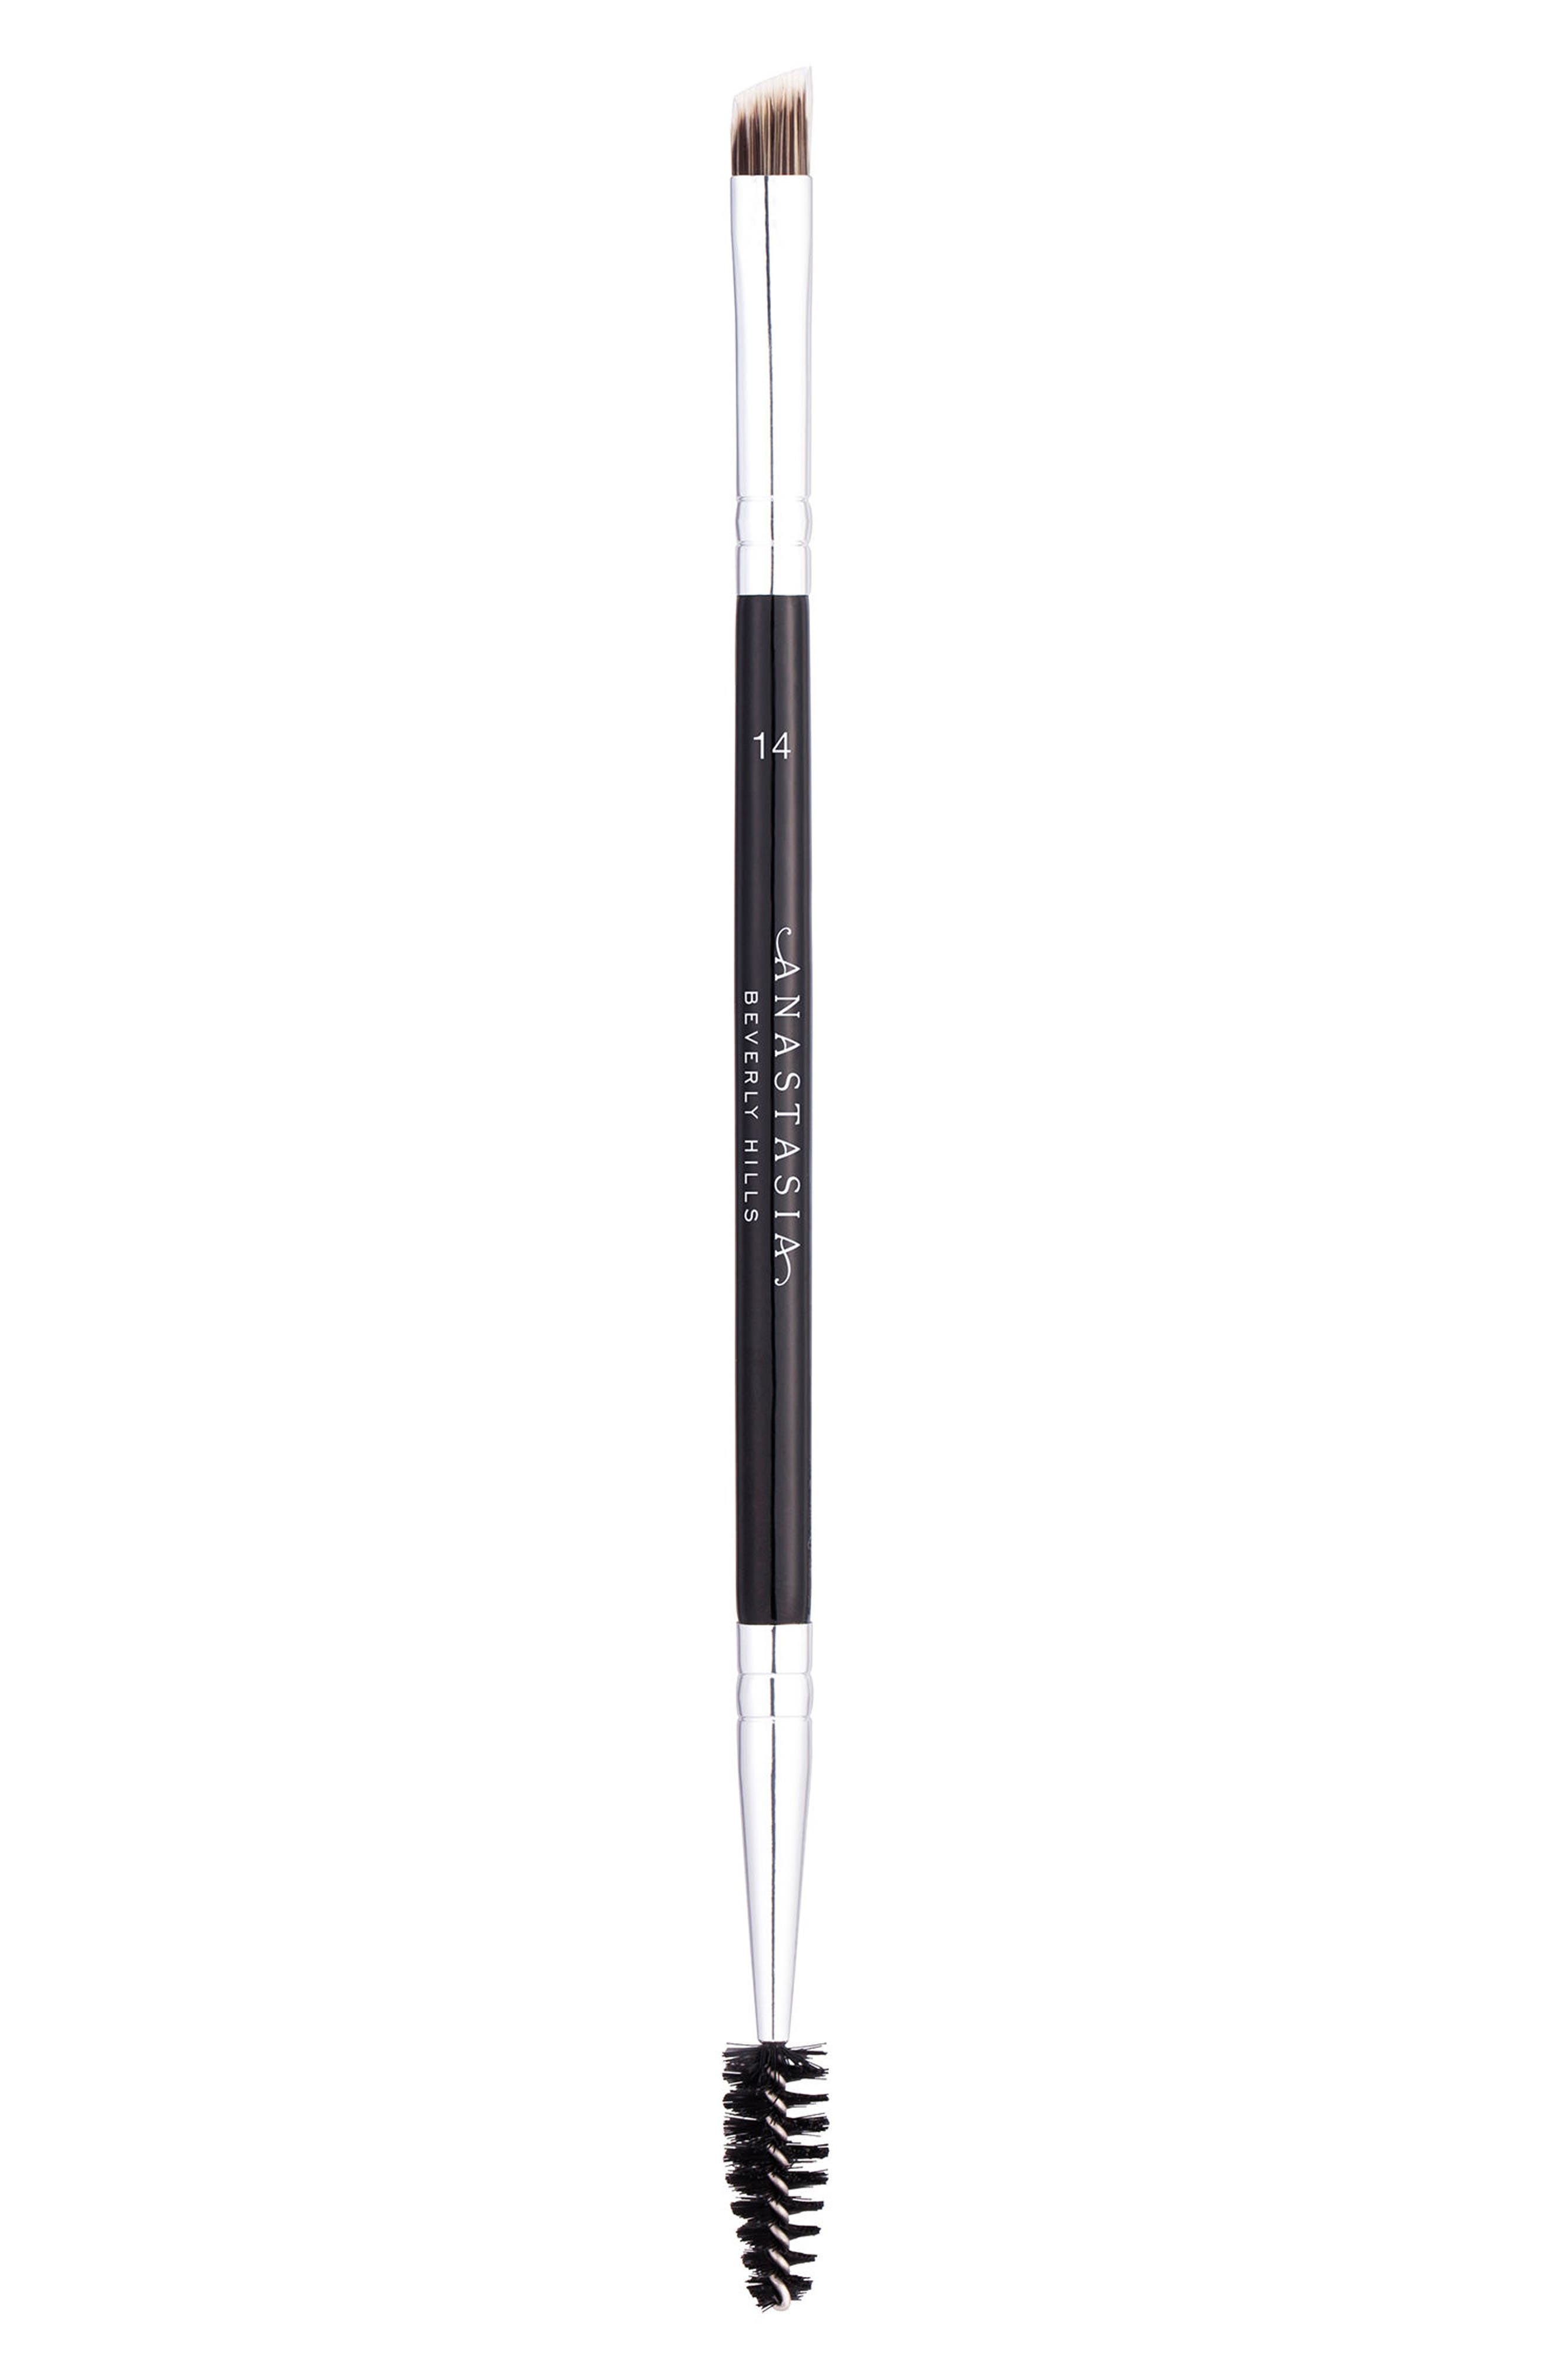 #14 Dual-Sided Brow & Eyeliner Brush,                         Main,                         color, NO COLOR